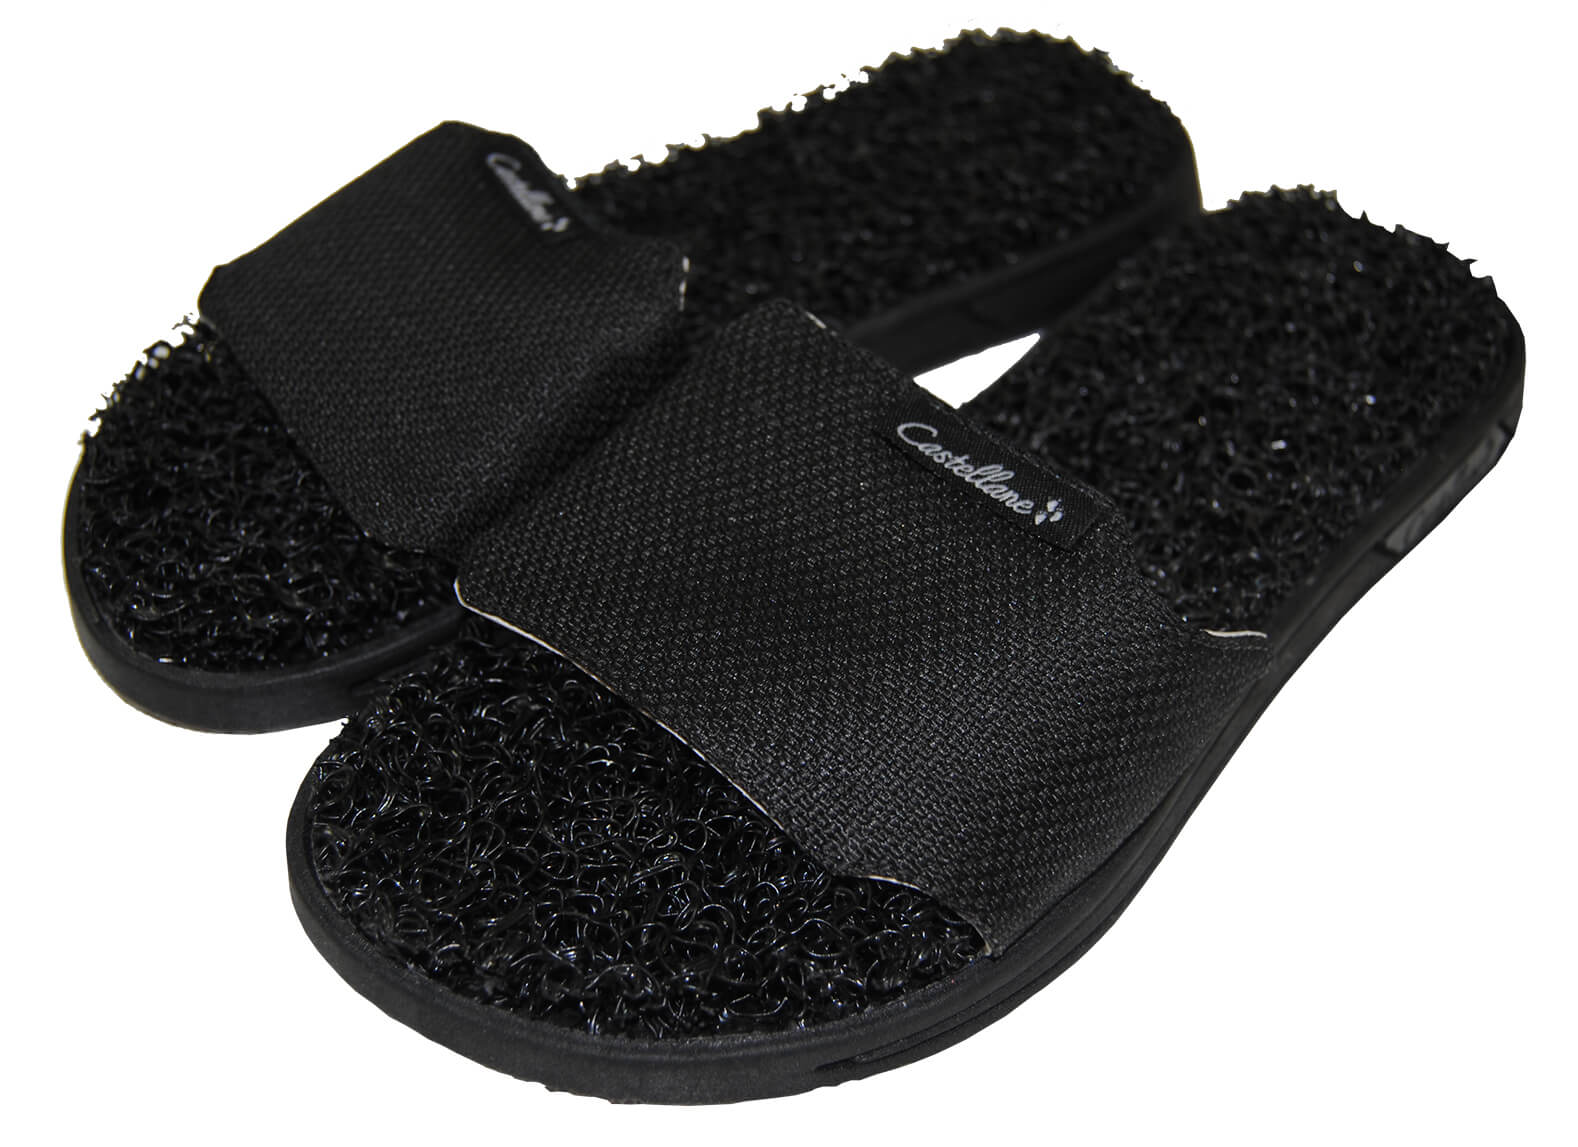 CHINELO CASTELLANE SLIDE PRETO